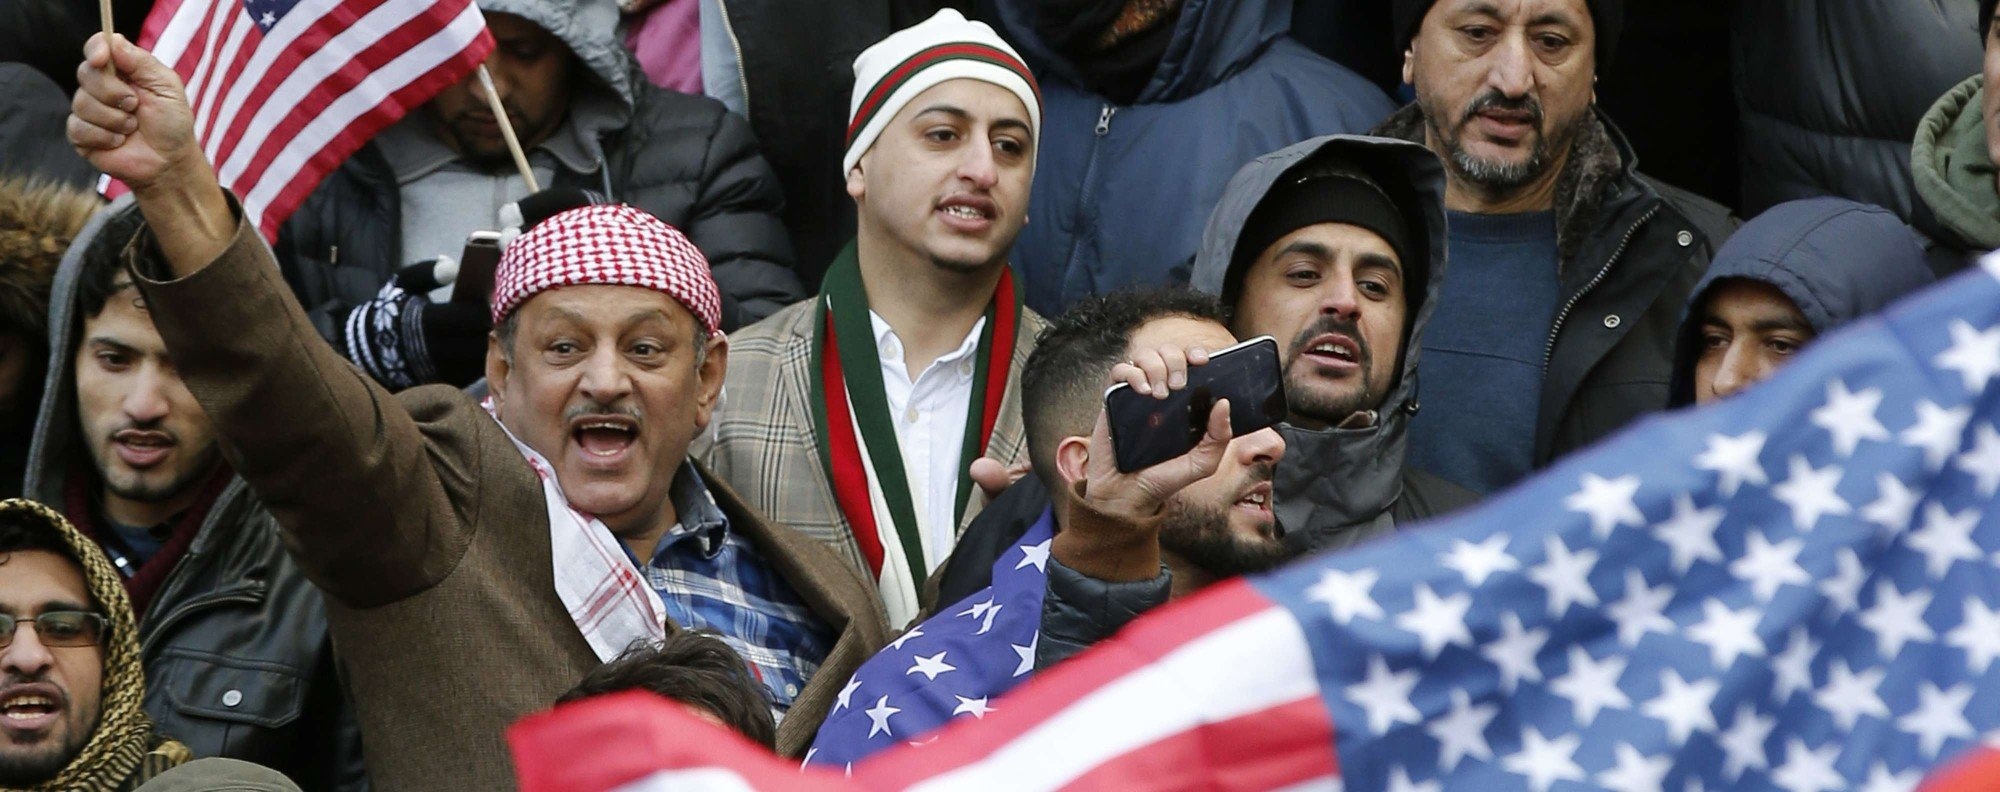 Muslims and Yemenis in Brooklyn protest the travel ban. Photo: AP